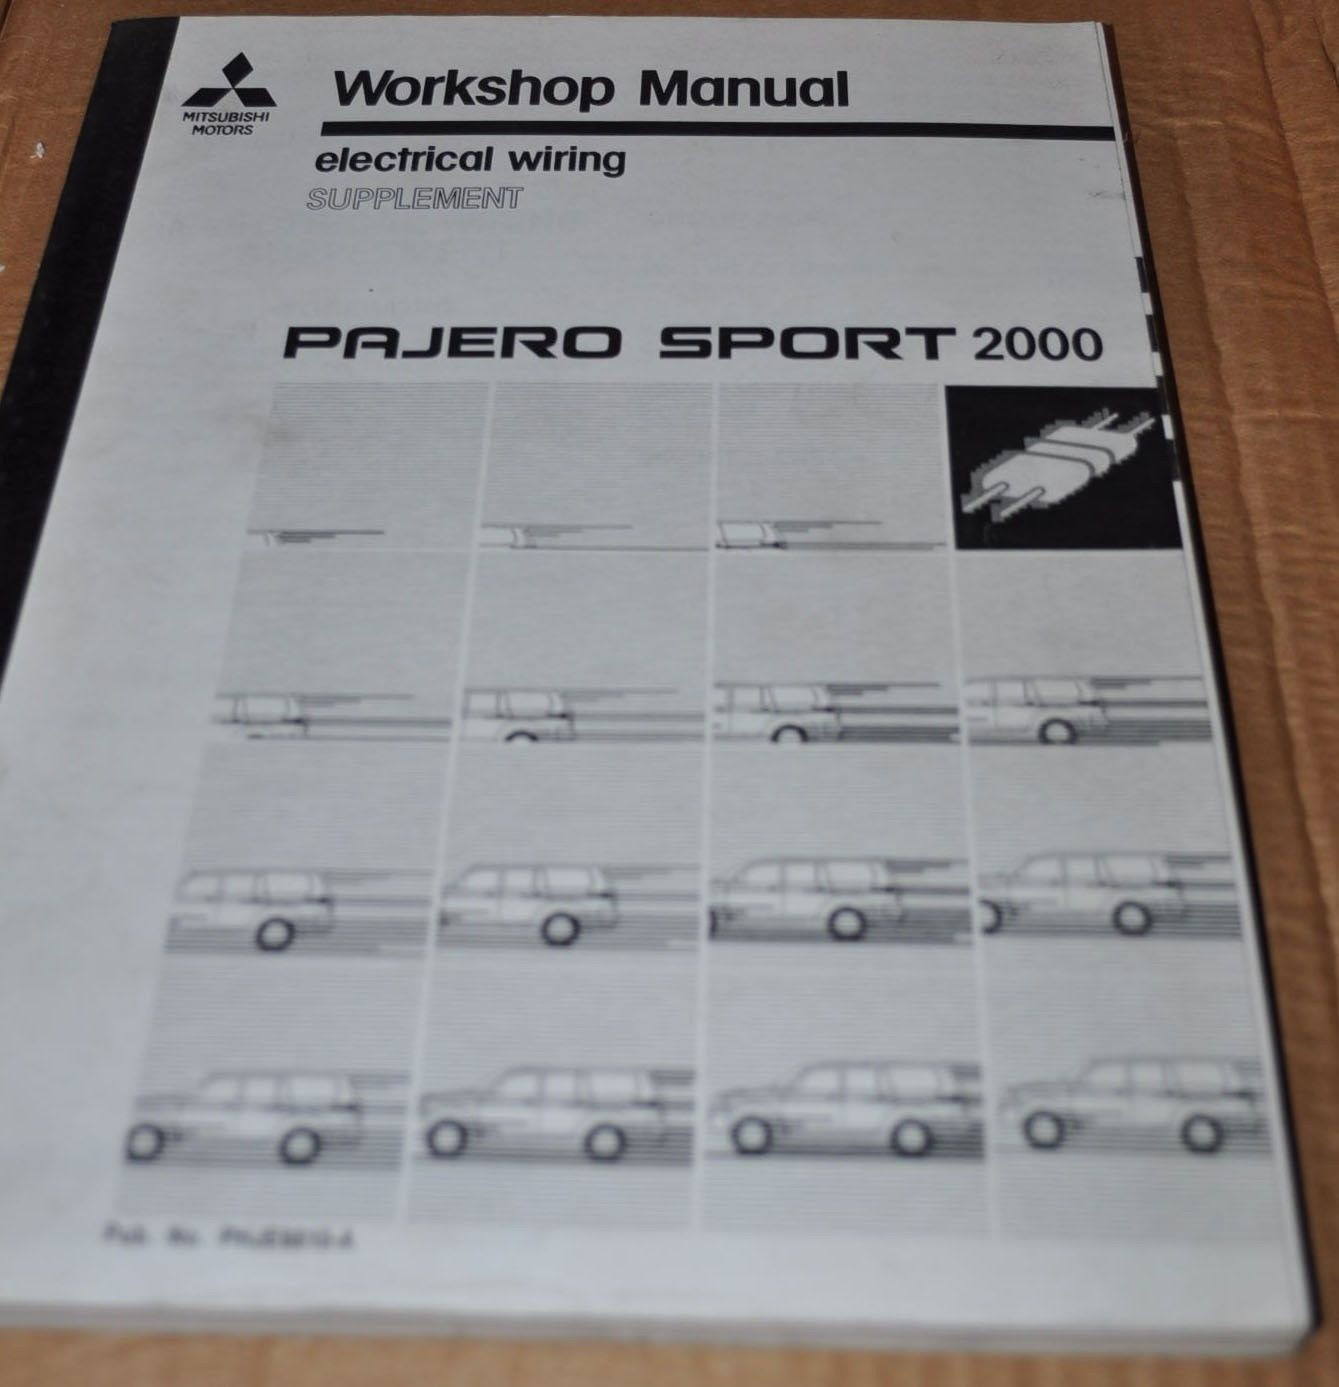 Mitsubishi Pajero Sport 2000 Electrical Wiring Supplement Workshop Book Manual Auto Brochure